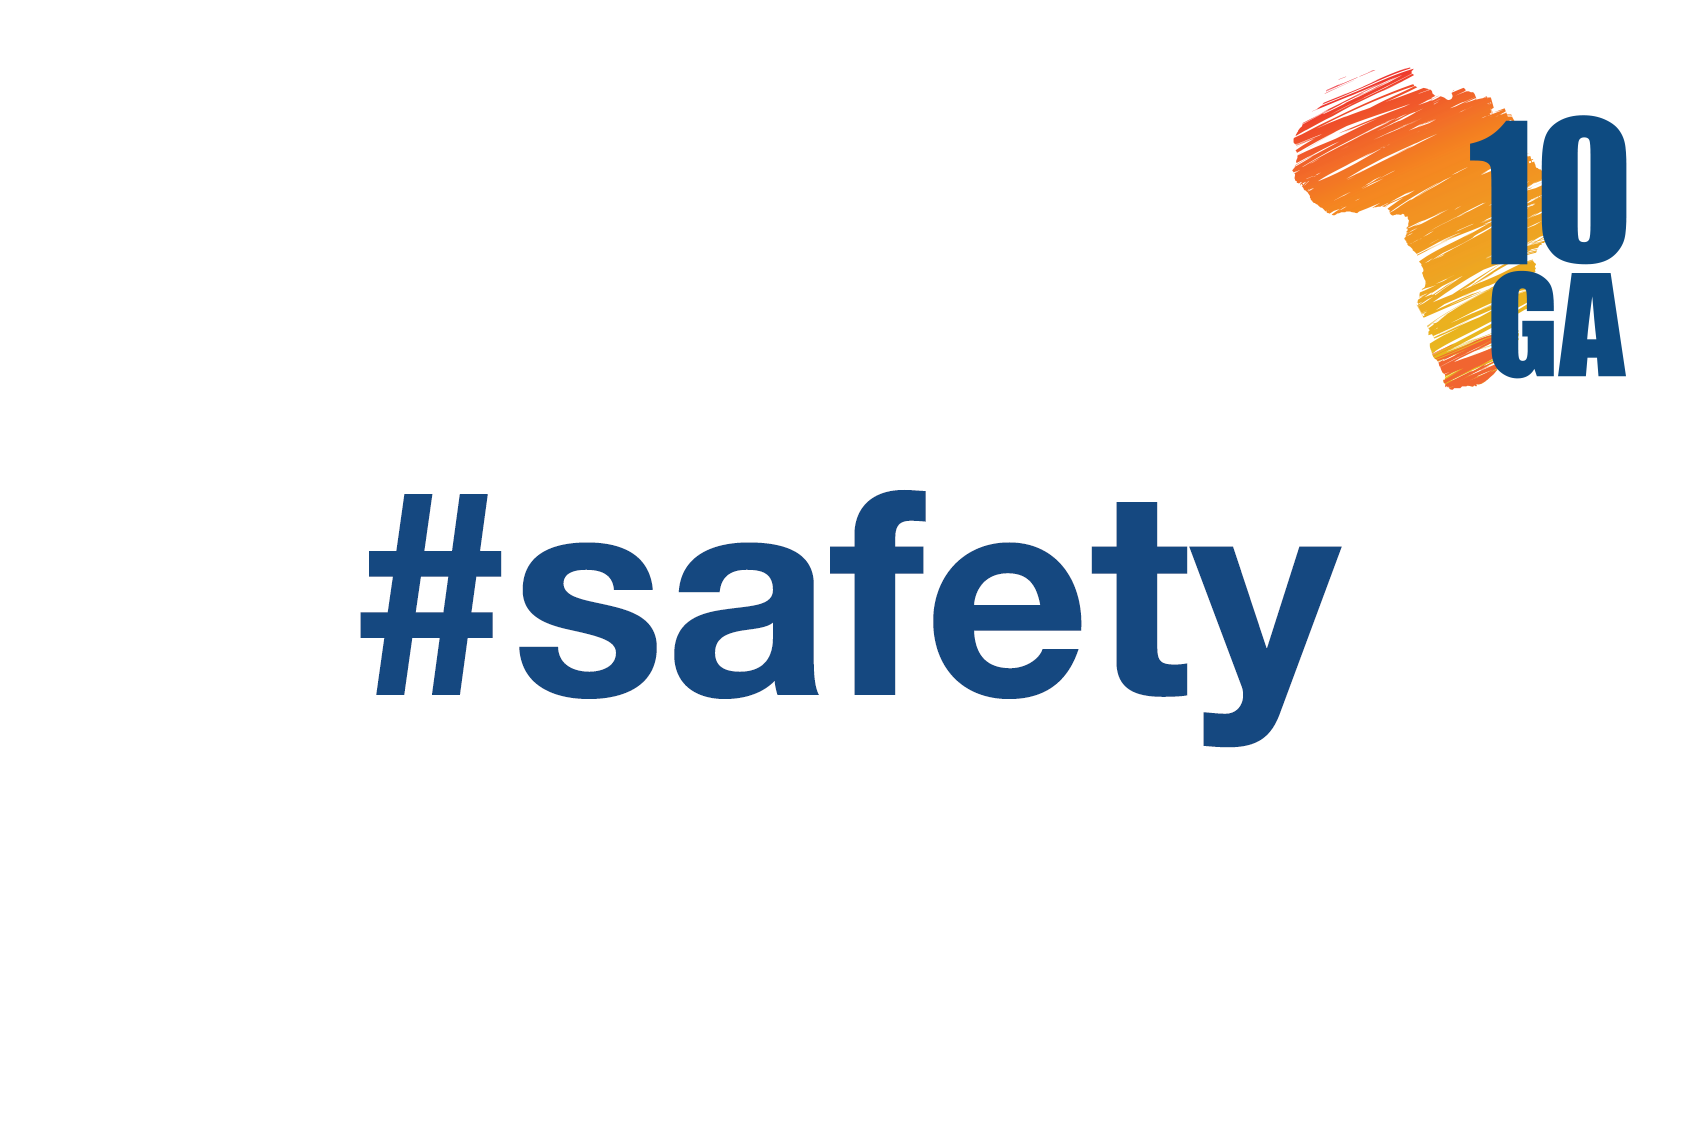 hashtag safety with 10GA logo